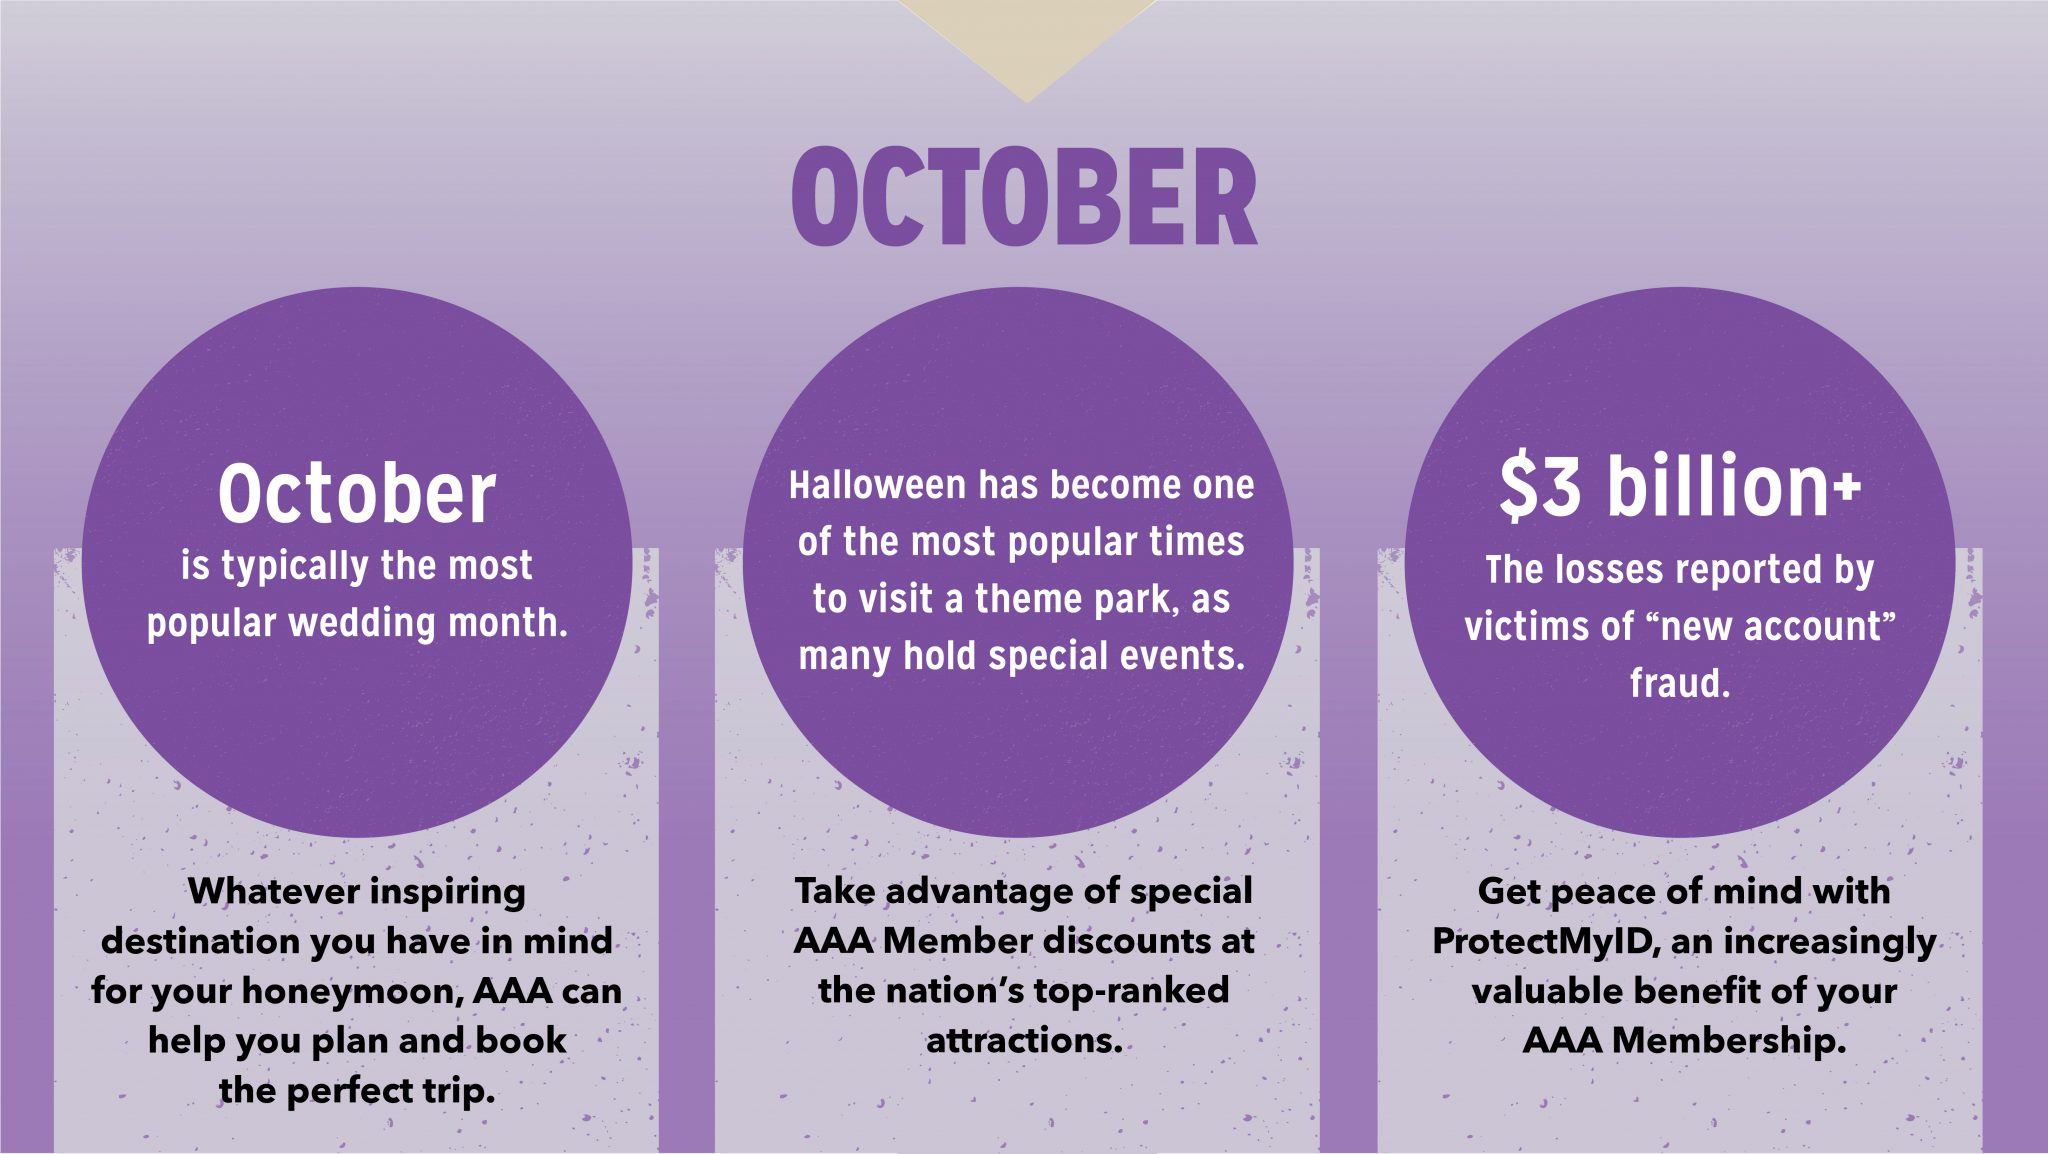 aaa-membership-benefits-october